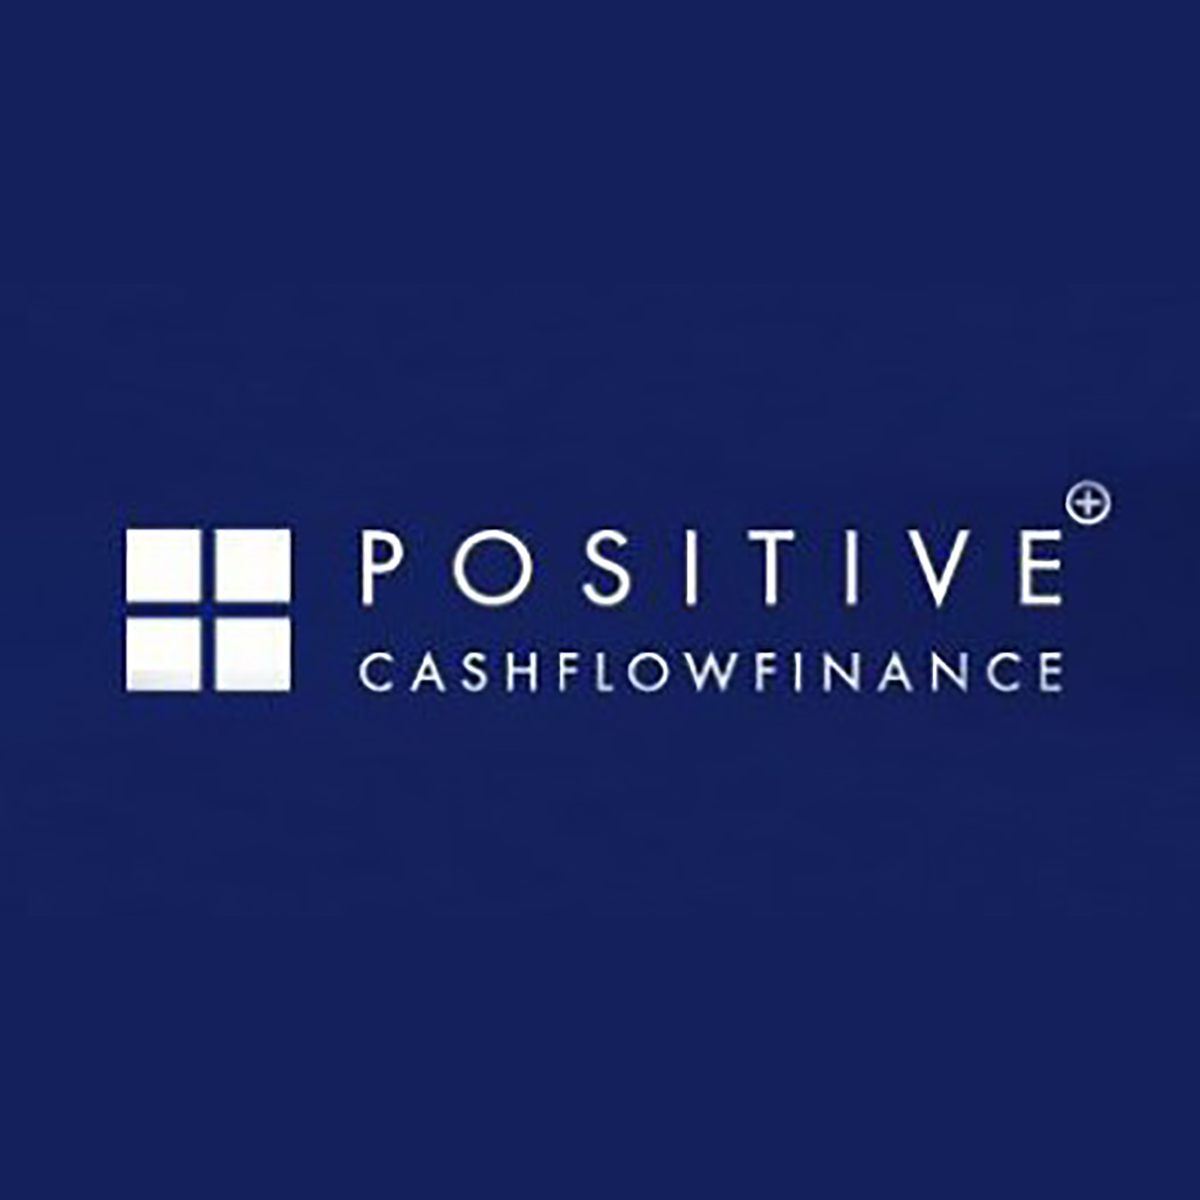 Positive Cashflow Finance